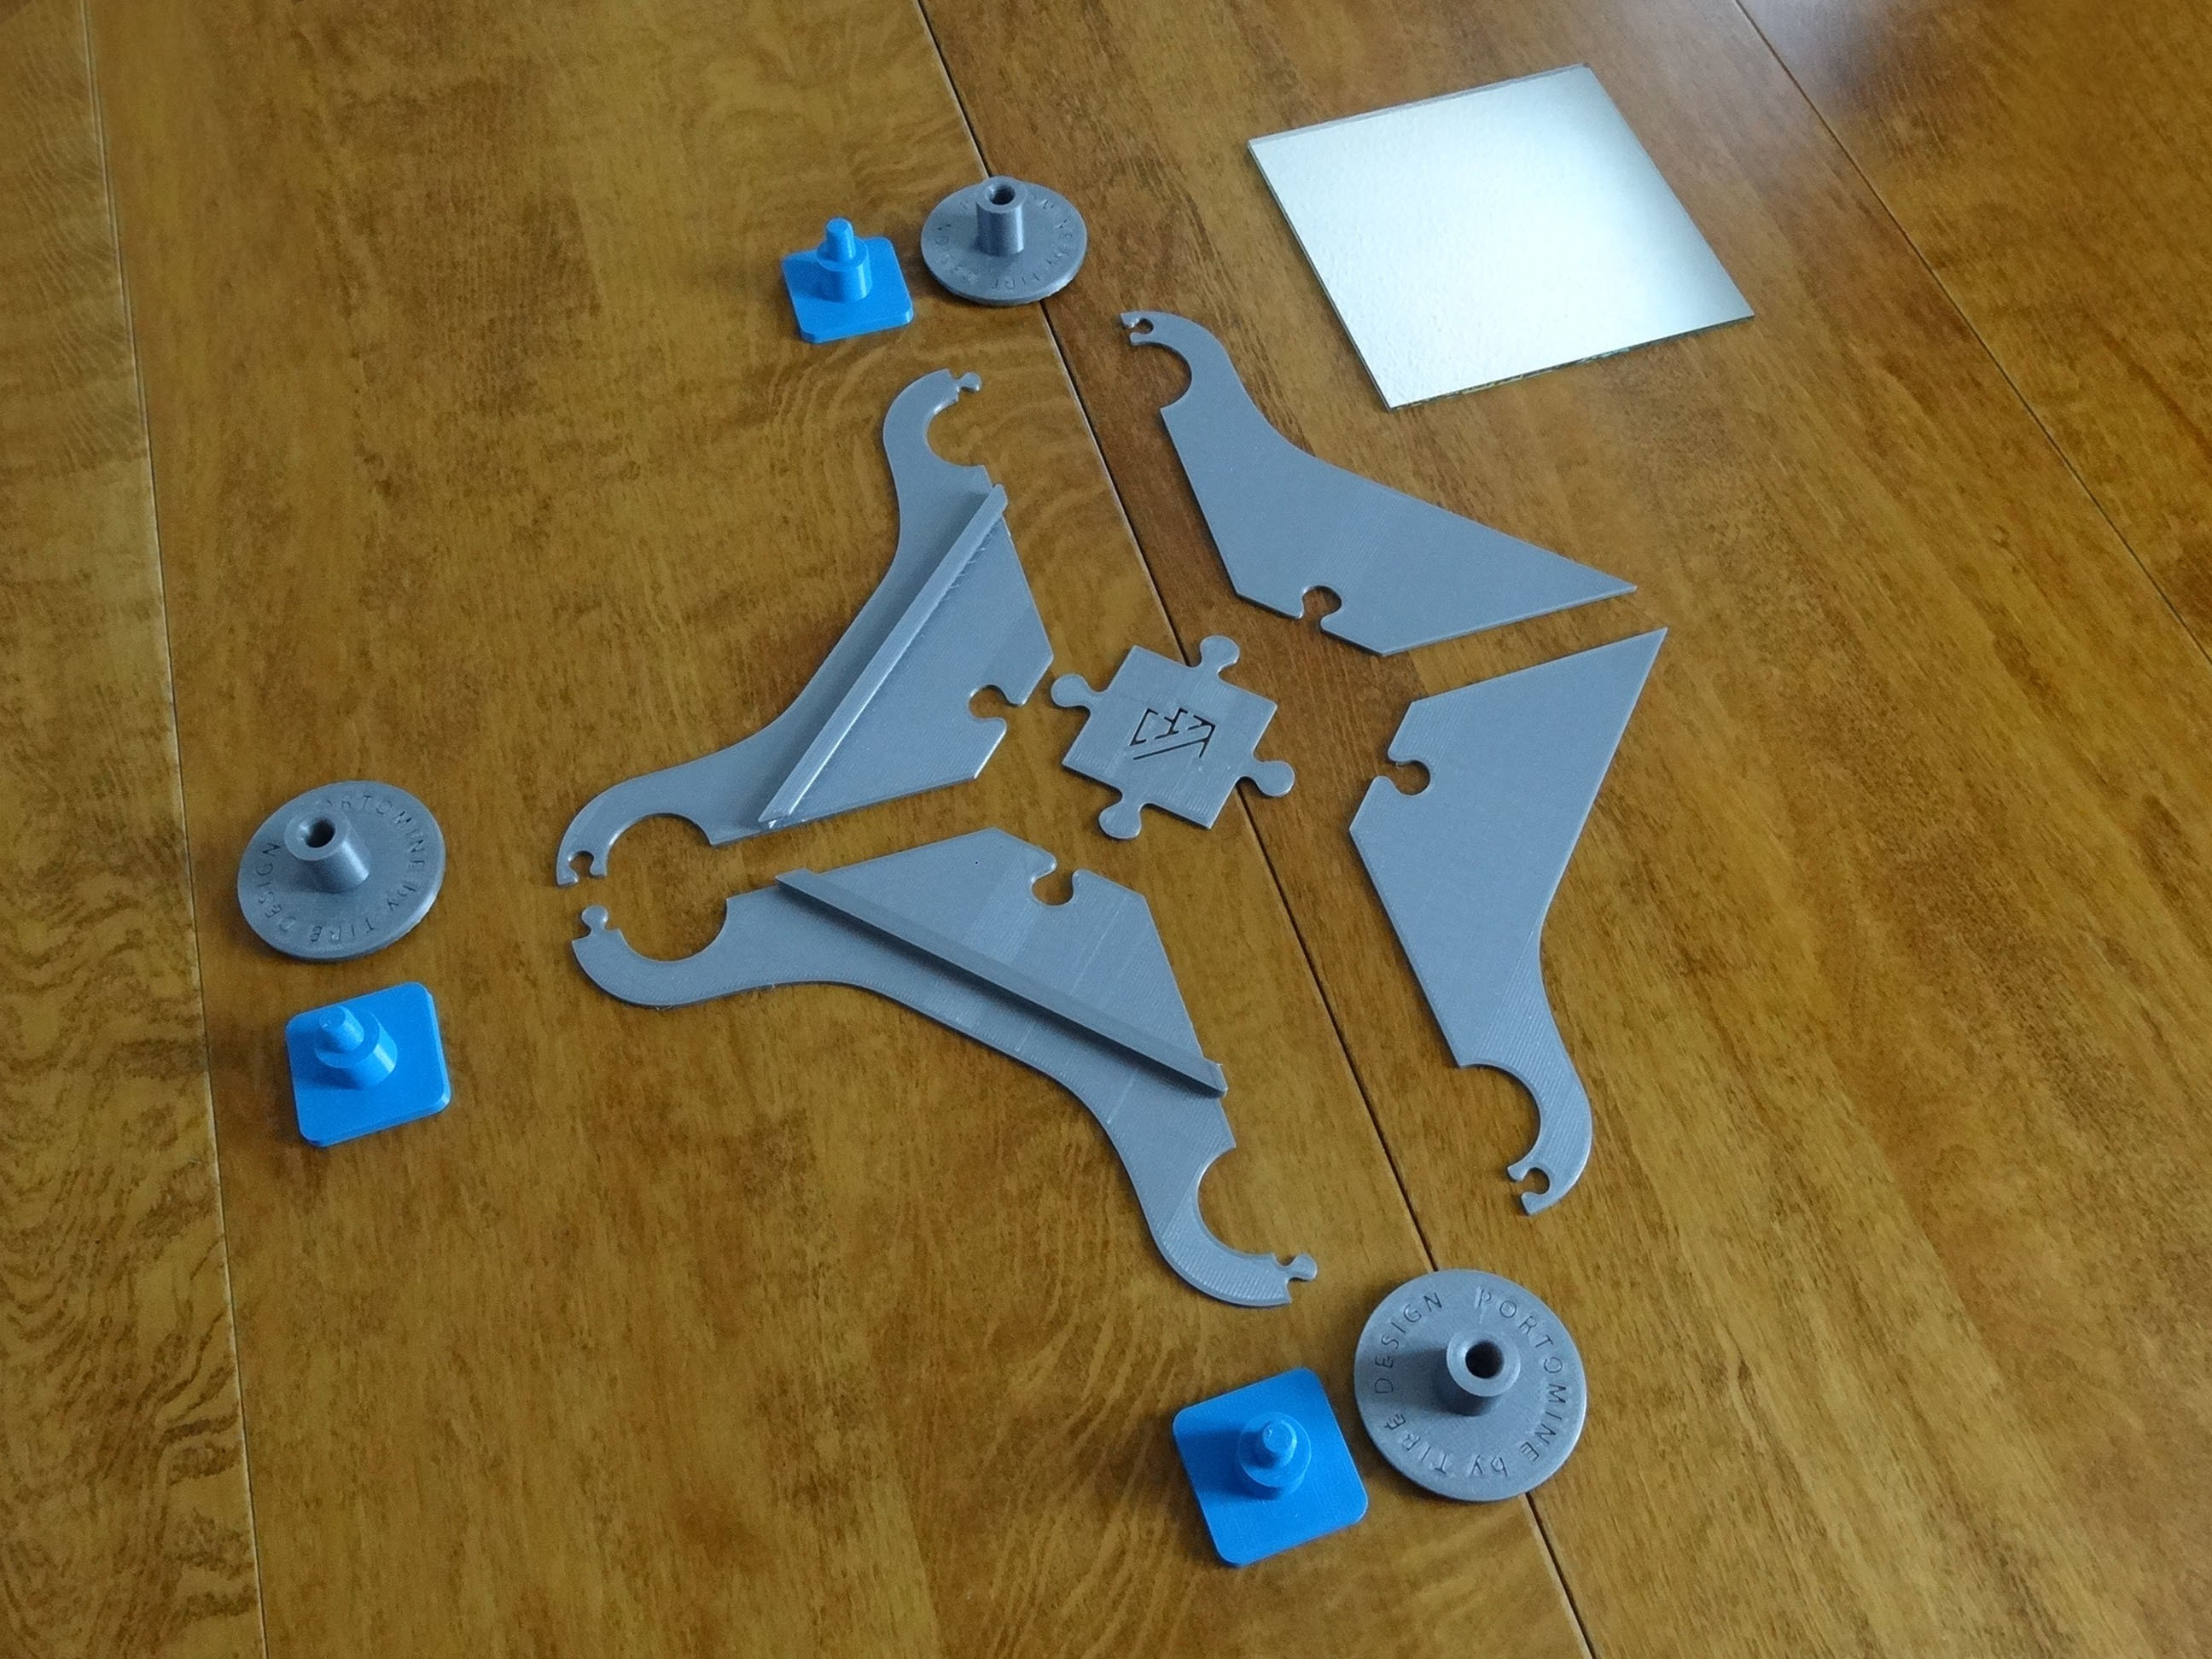 DSC06280.JPG Download STL file Mirror & pegs Portomine stars • 3D printer design, Tibe-Design